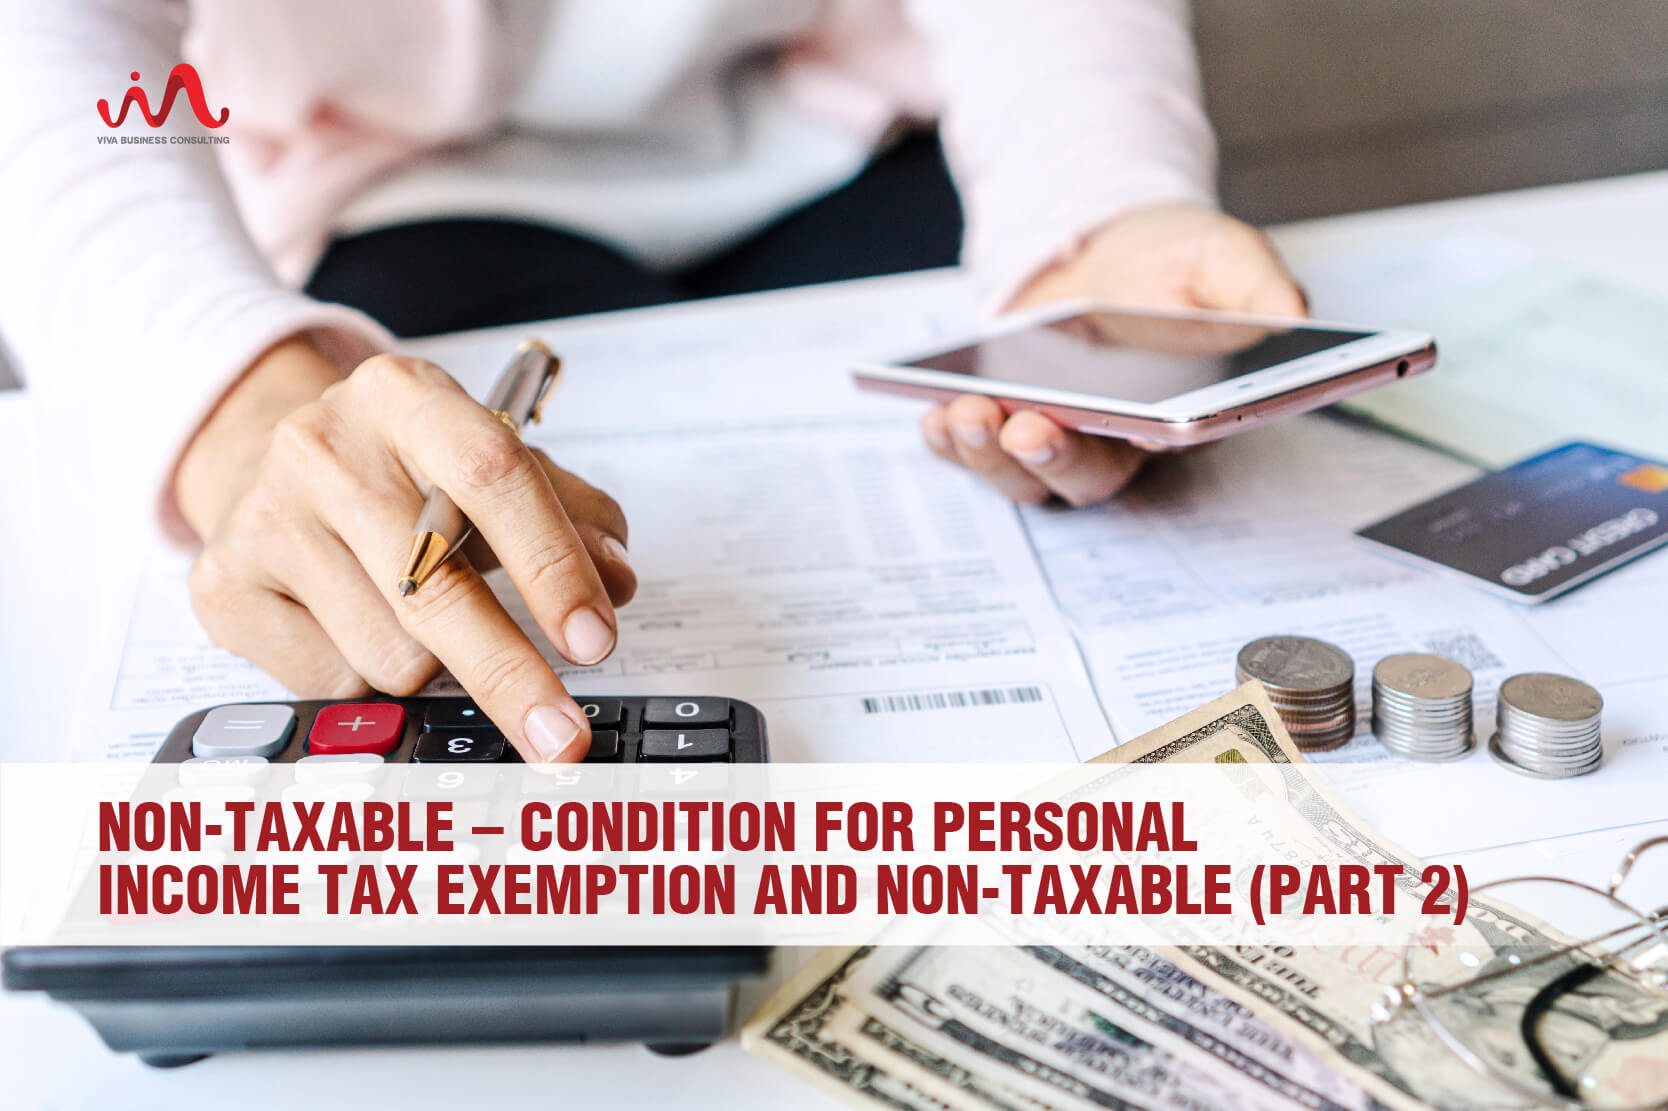 Personal income tax exemption